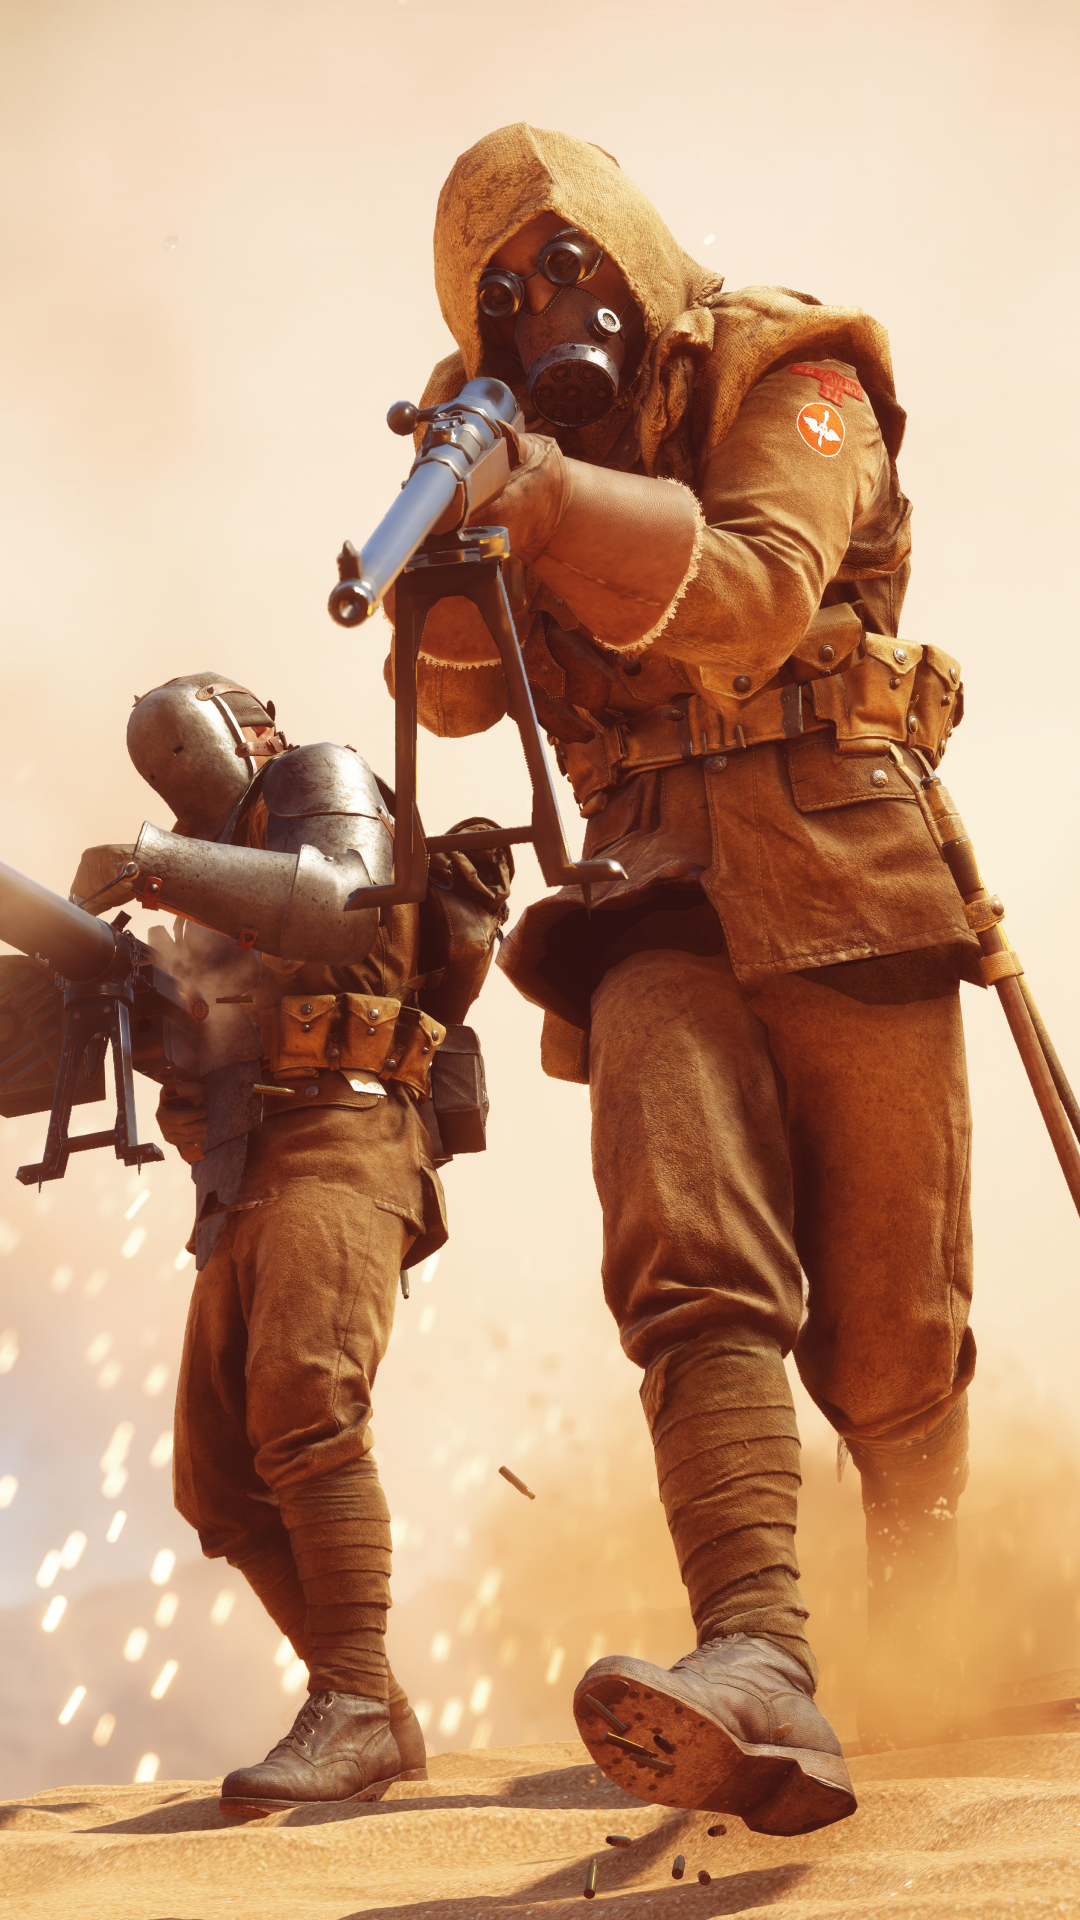 Download this Wallpaper iPhone 5S Video Game/Battlefield